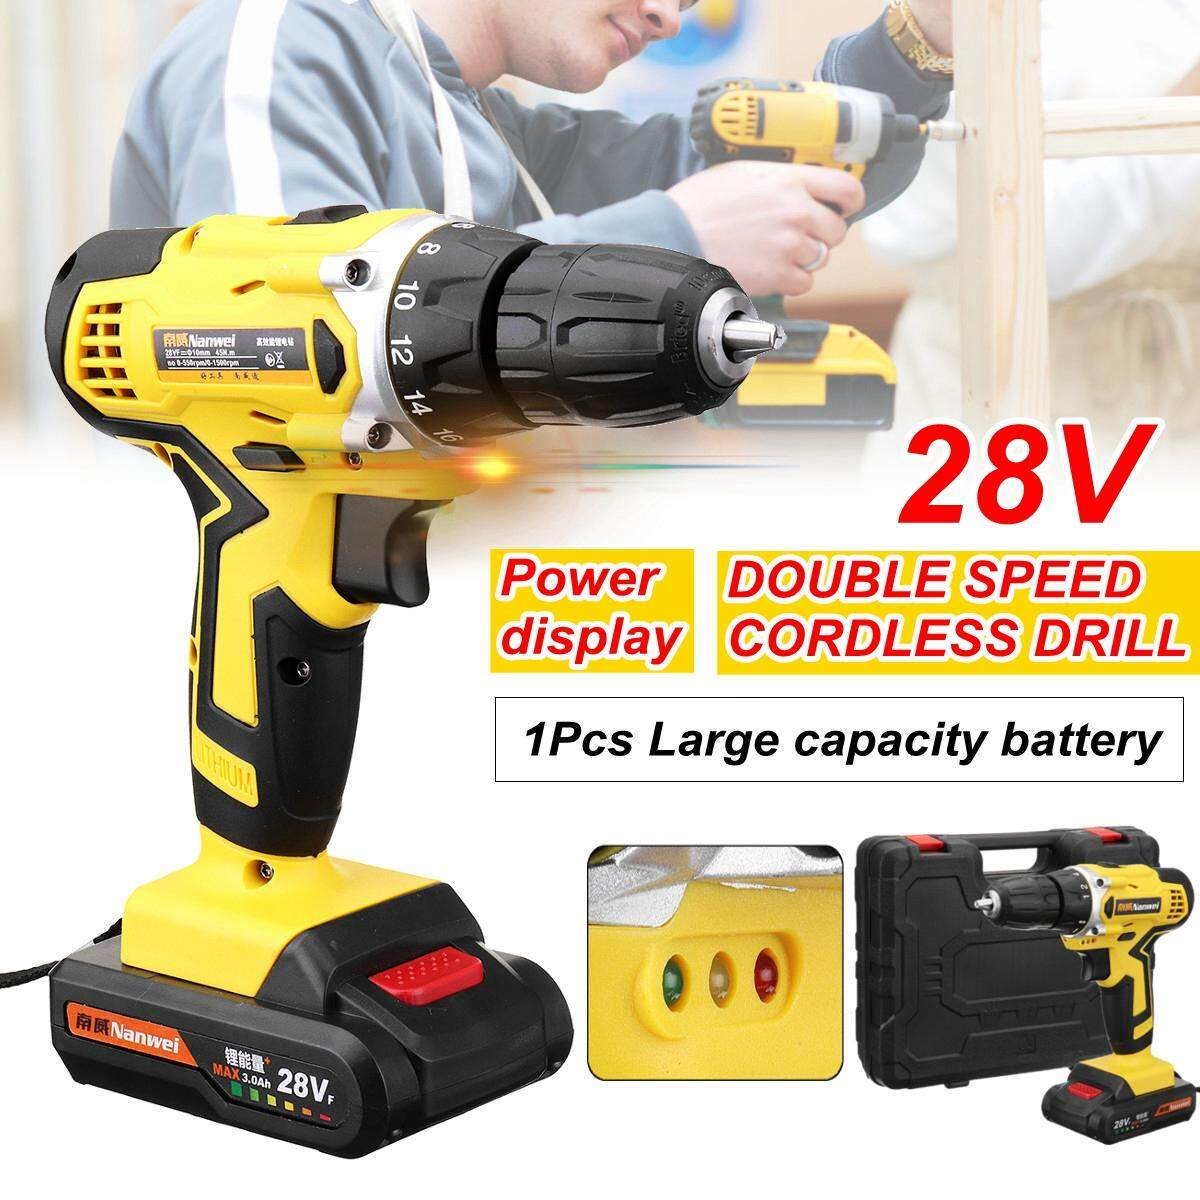 【Free Shipping + Flash Deal】28V Electric Cordless Drill Screwdriver BRUSHLESS Double speed Adjustment LED lighting 1/2Pcs LI-ION Rechargeable battery 35Nm 18-speed Torque